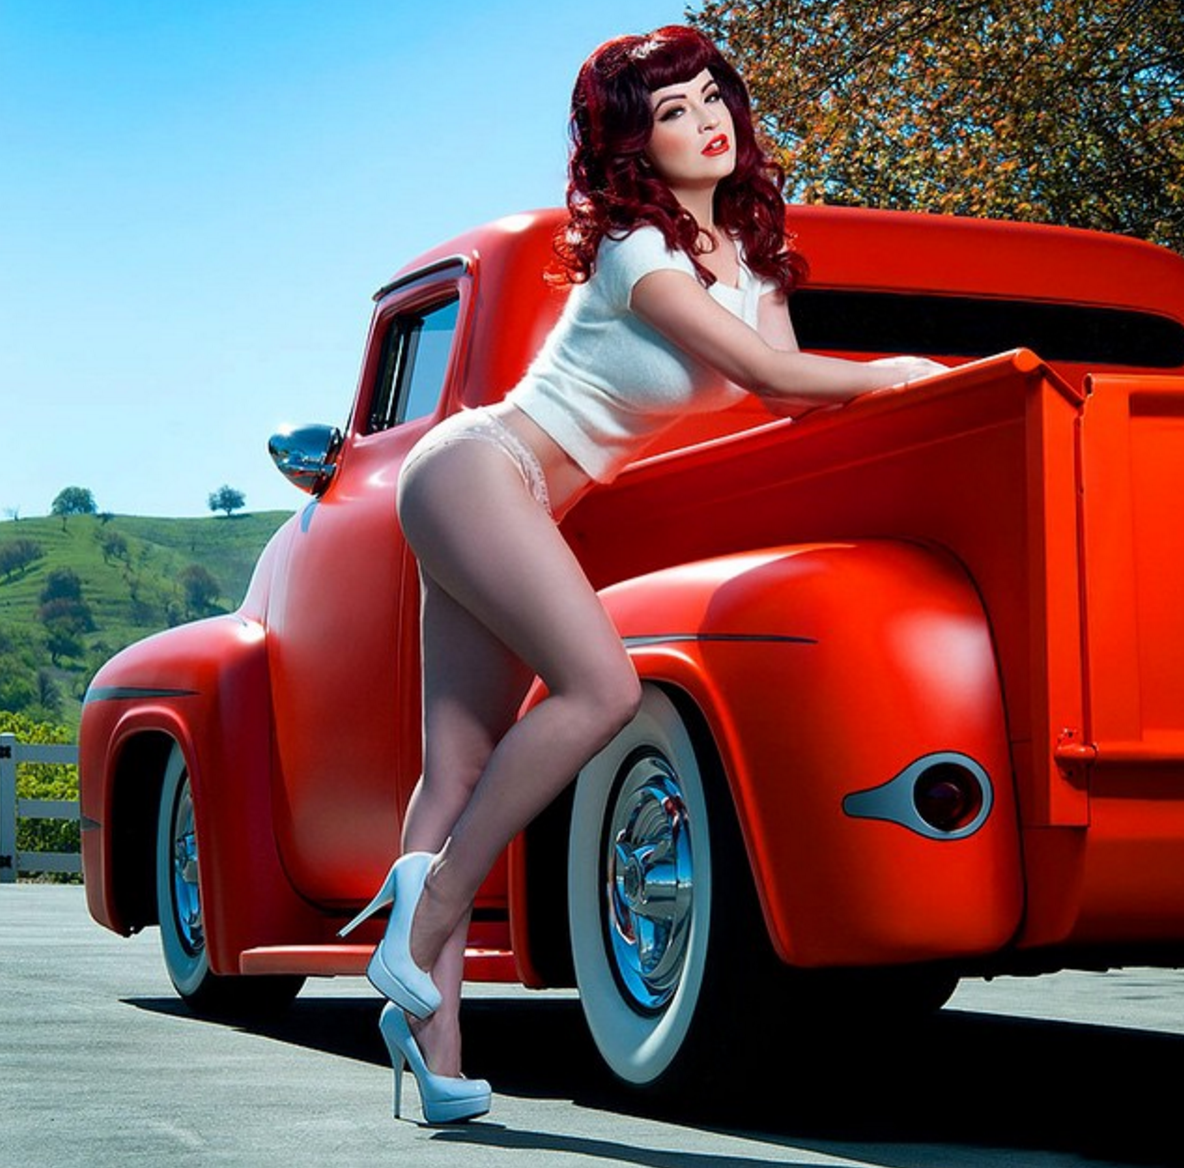 college-poon-naked-girls-with-hotrods-naked-picture-with